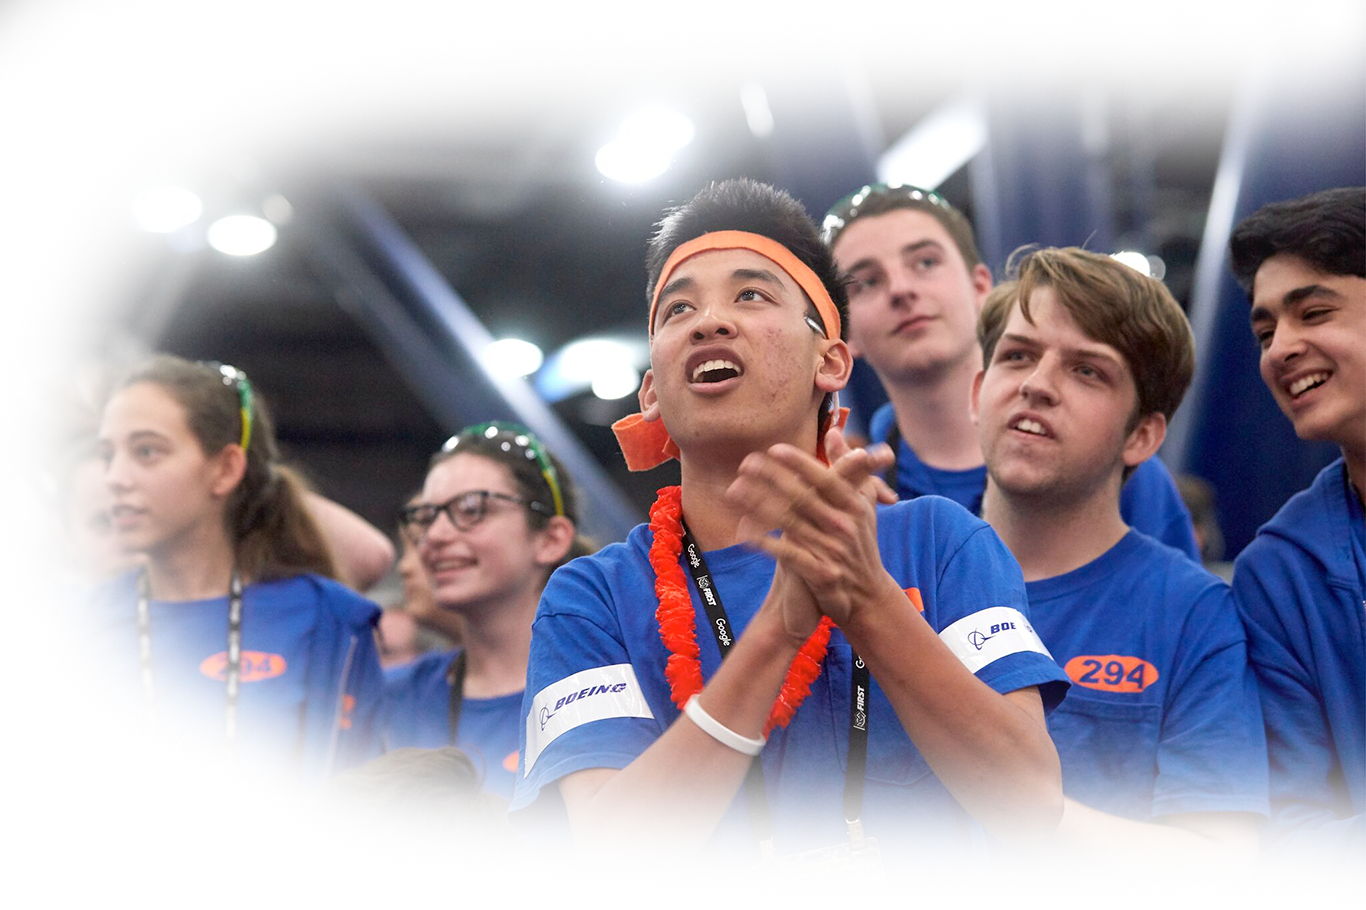 Student team members cheering at FIRST Robotics Competition field.